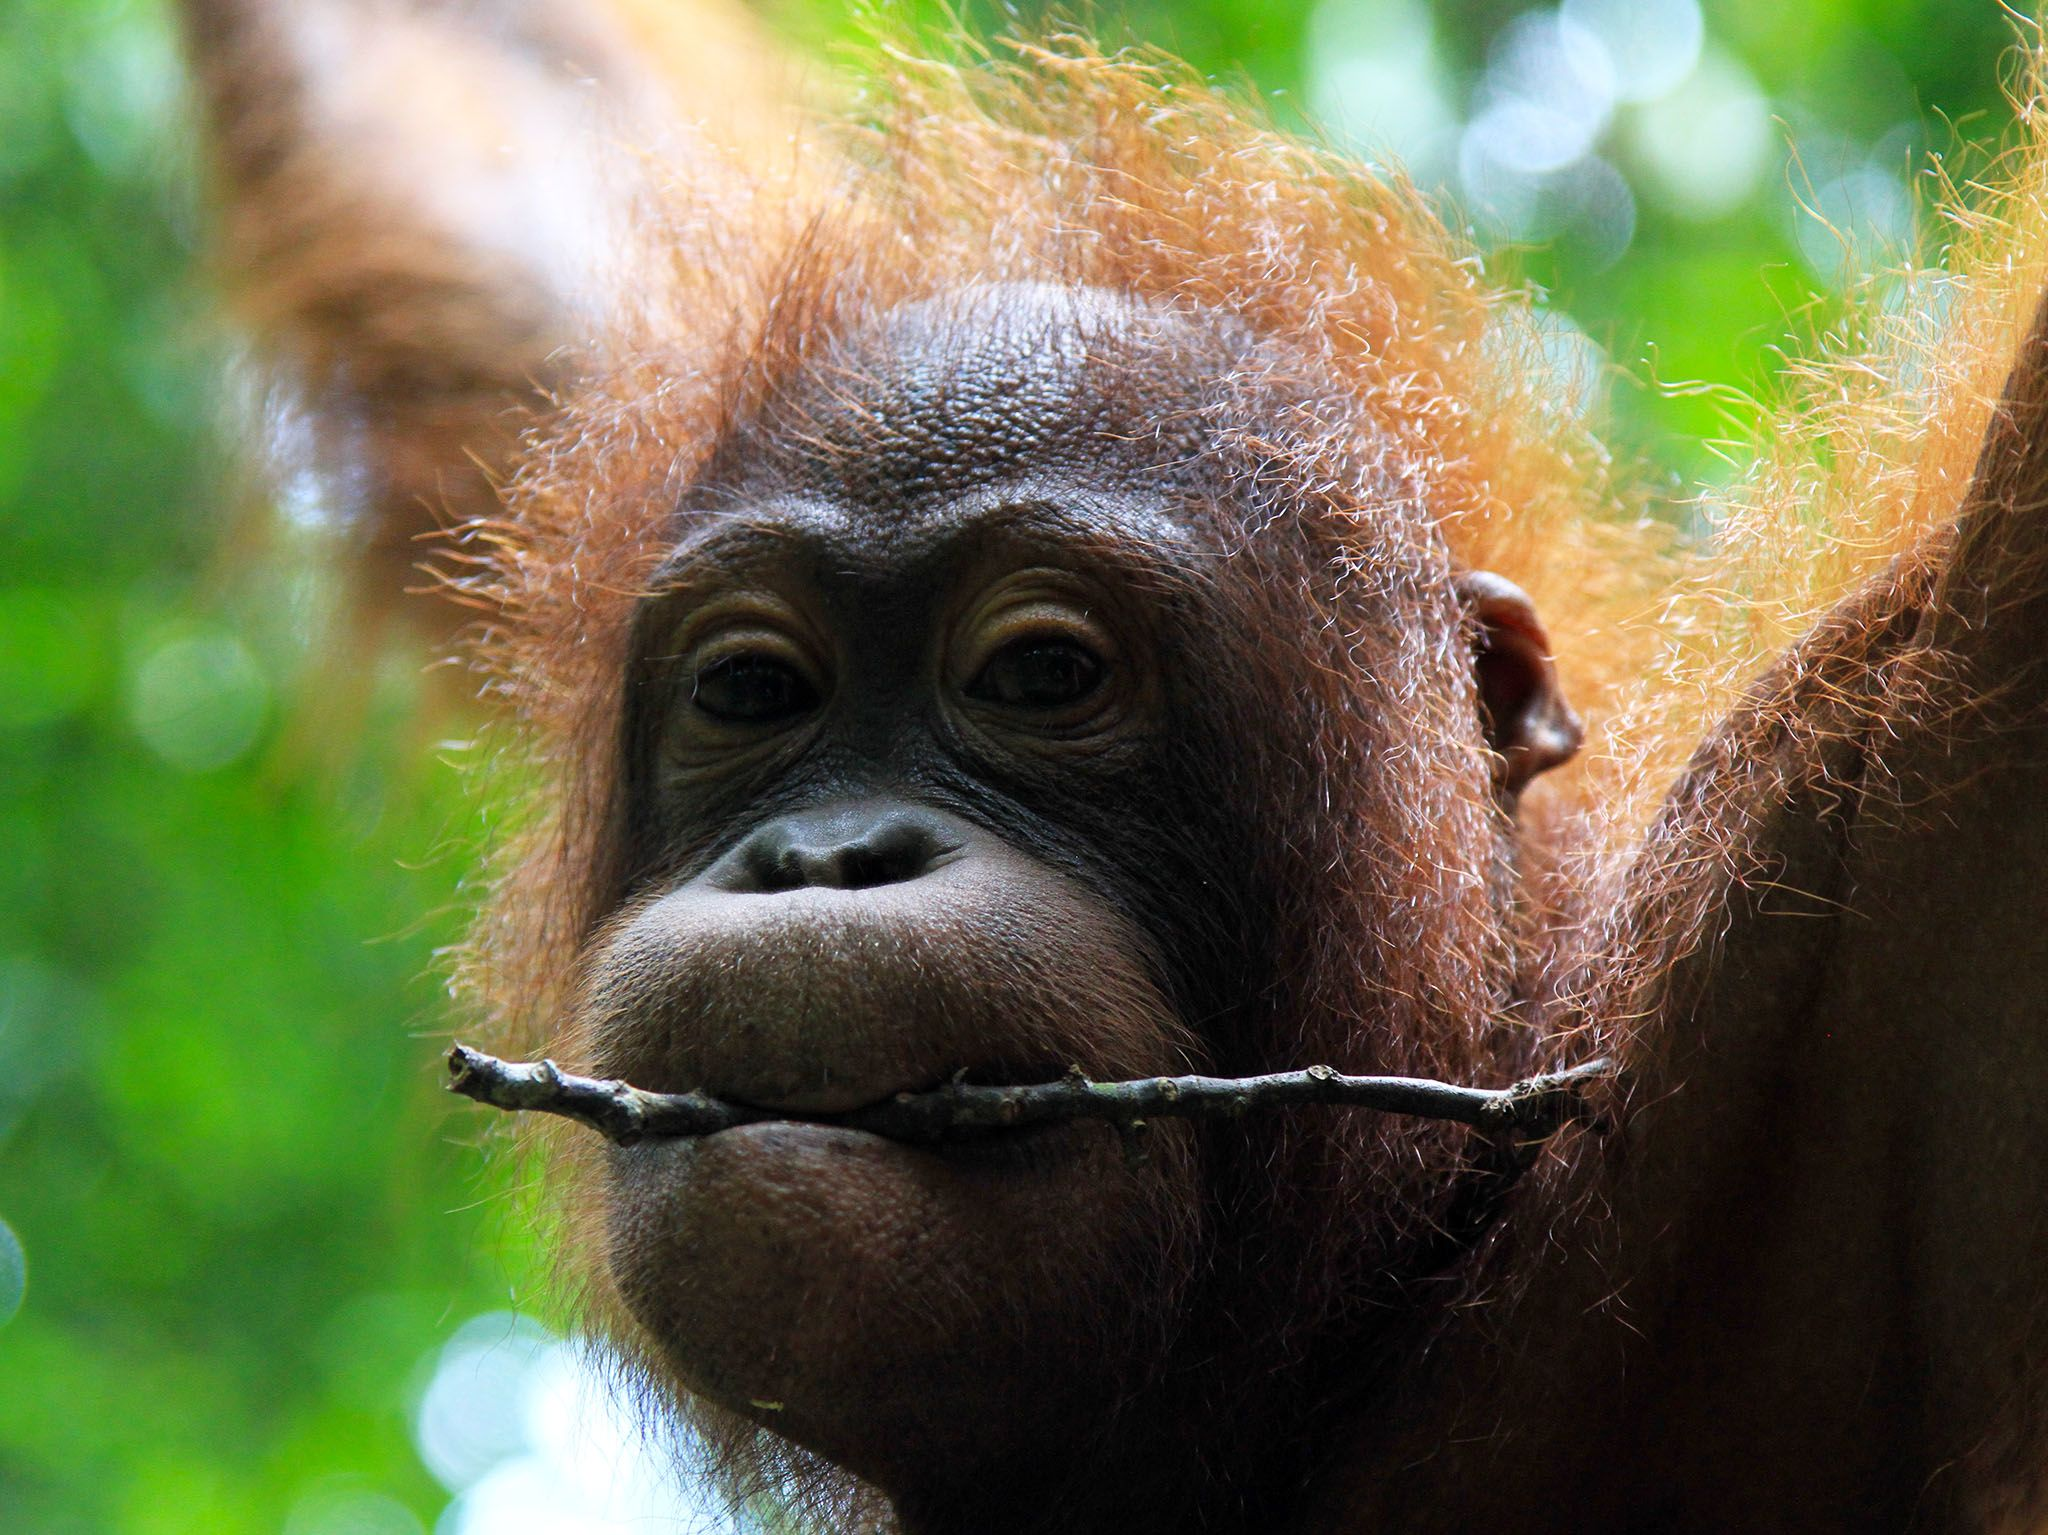 Malaysia: Baby orangutan holding stick in mouth. This image is from Borneo's Secret Kingdom. [Photo of the day - January 2017]